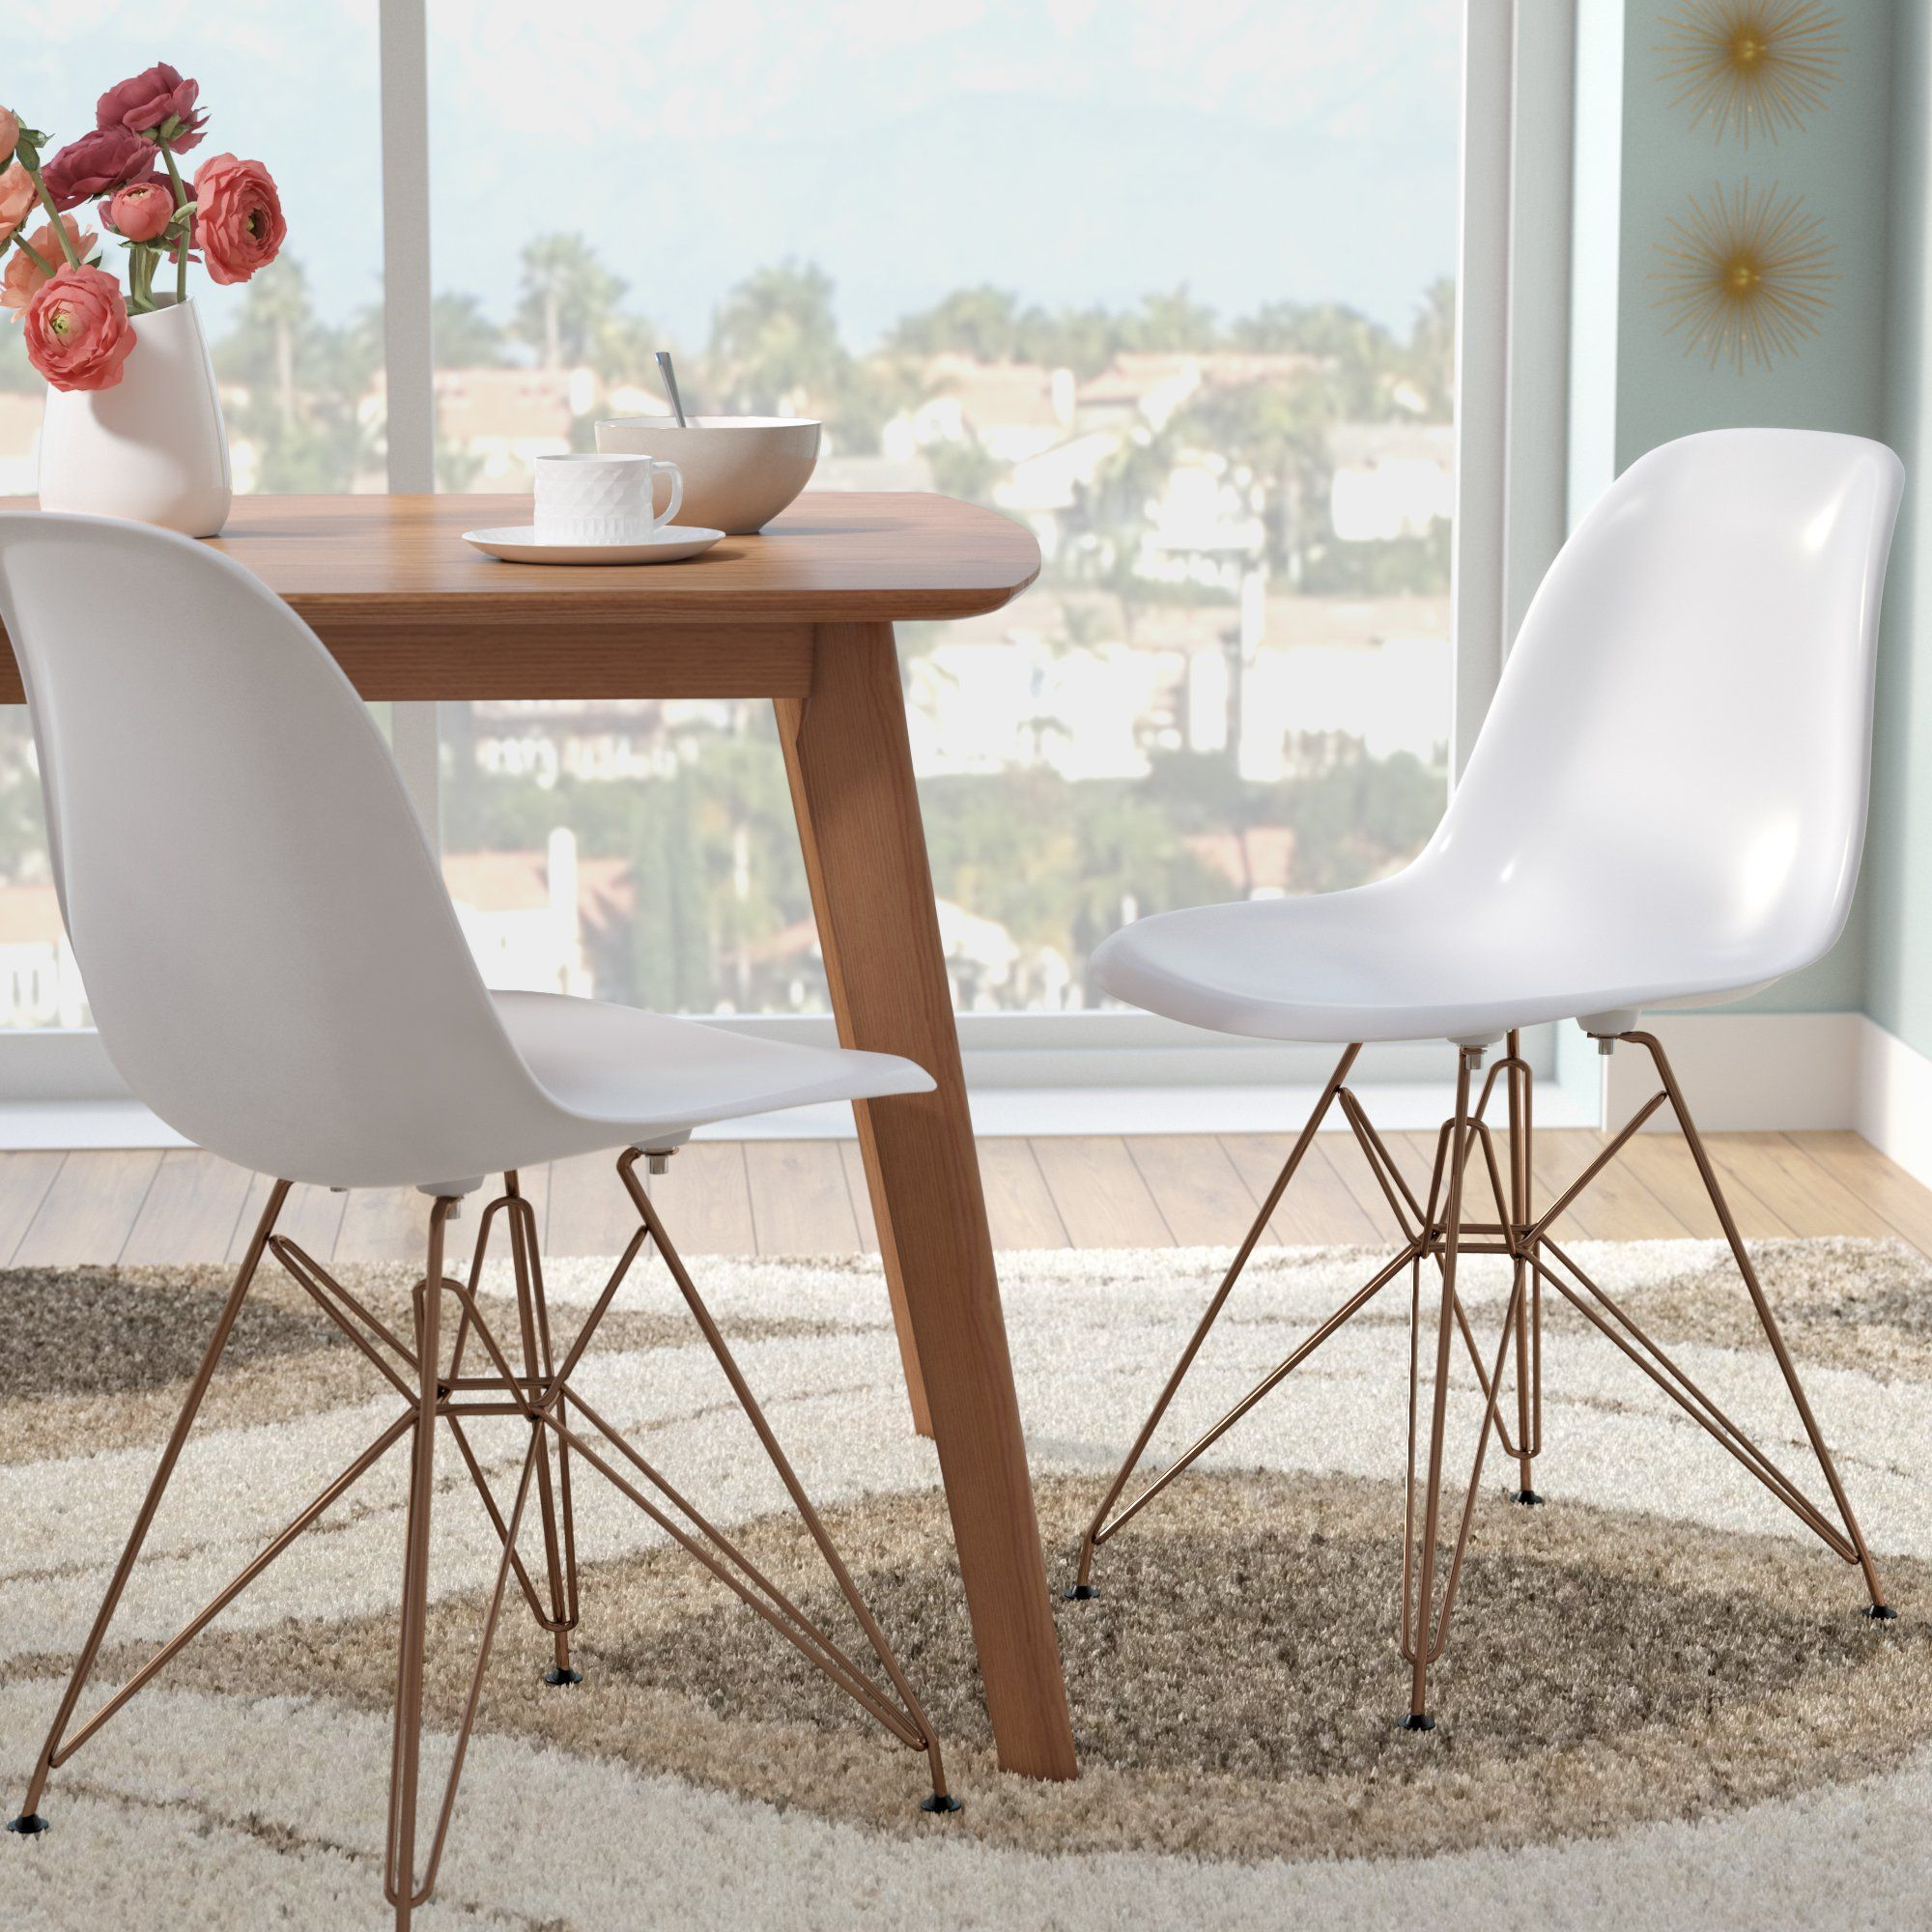 Main Image Zoomed Solid Wood Dining Chairs Plastic